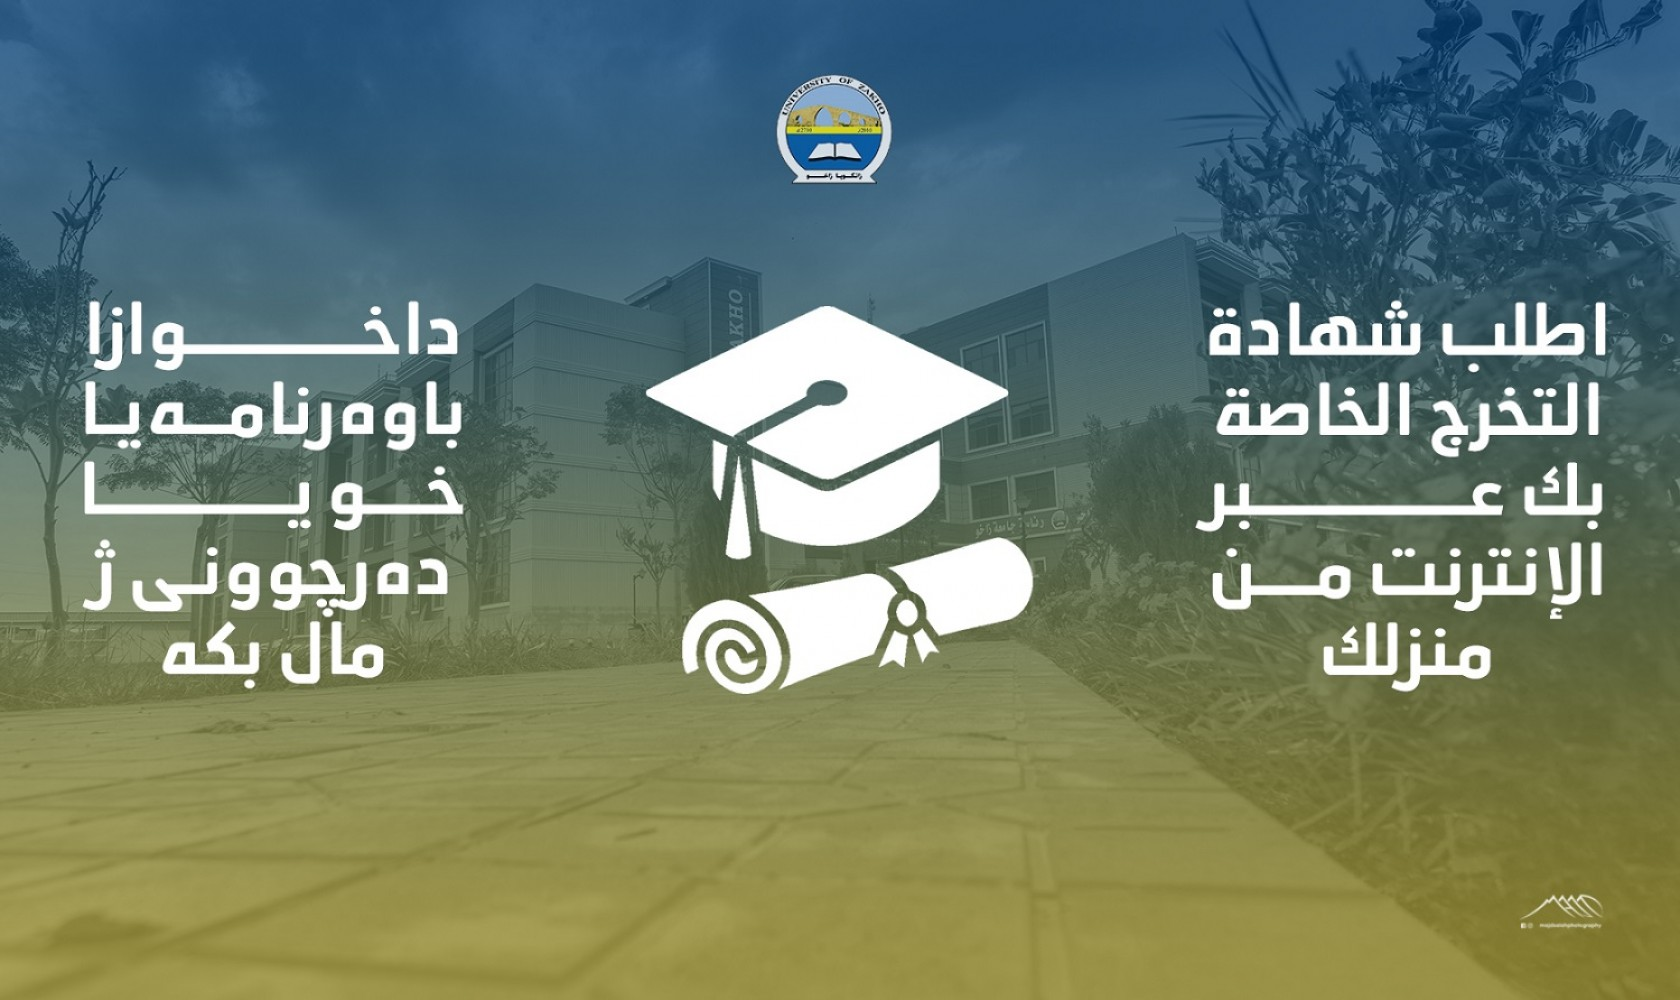 Request Your Graduation Certificate And Other Supporting Letters Online